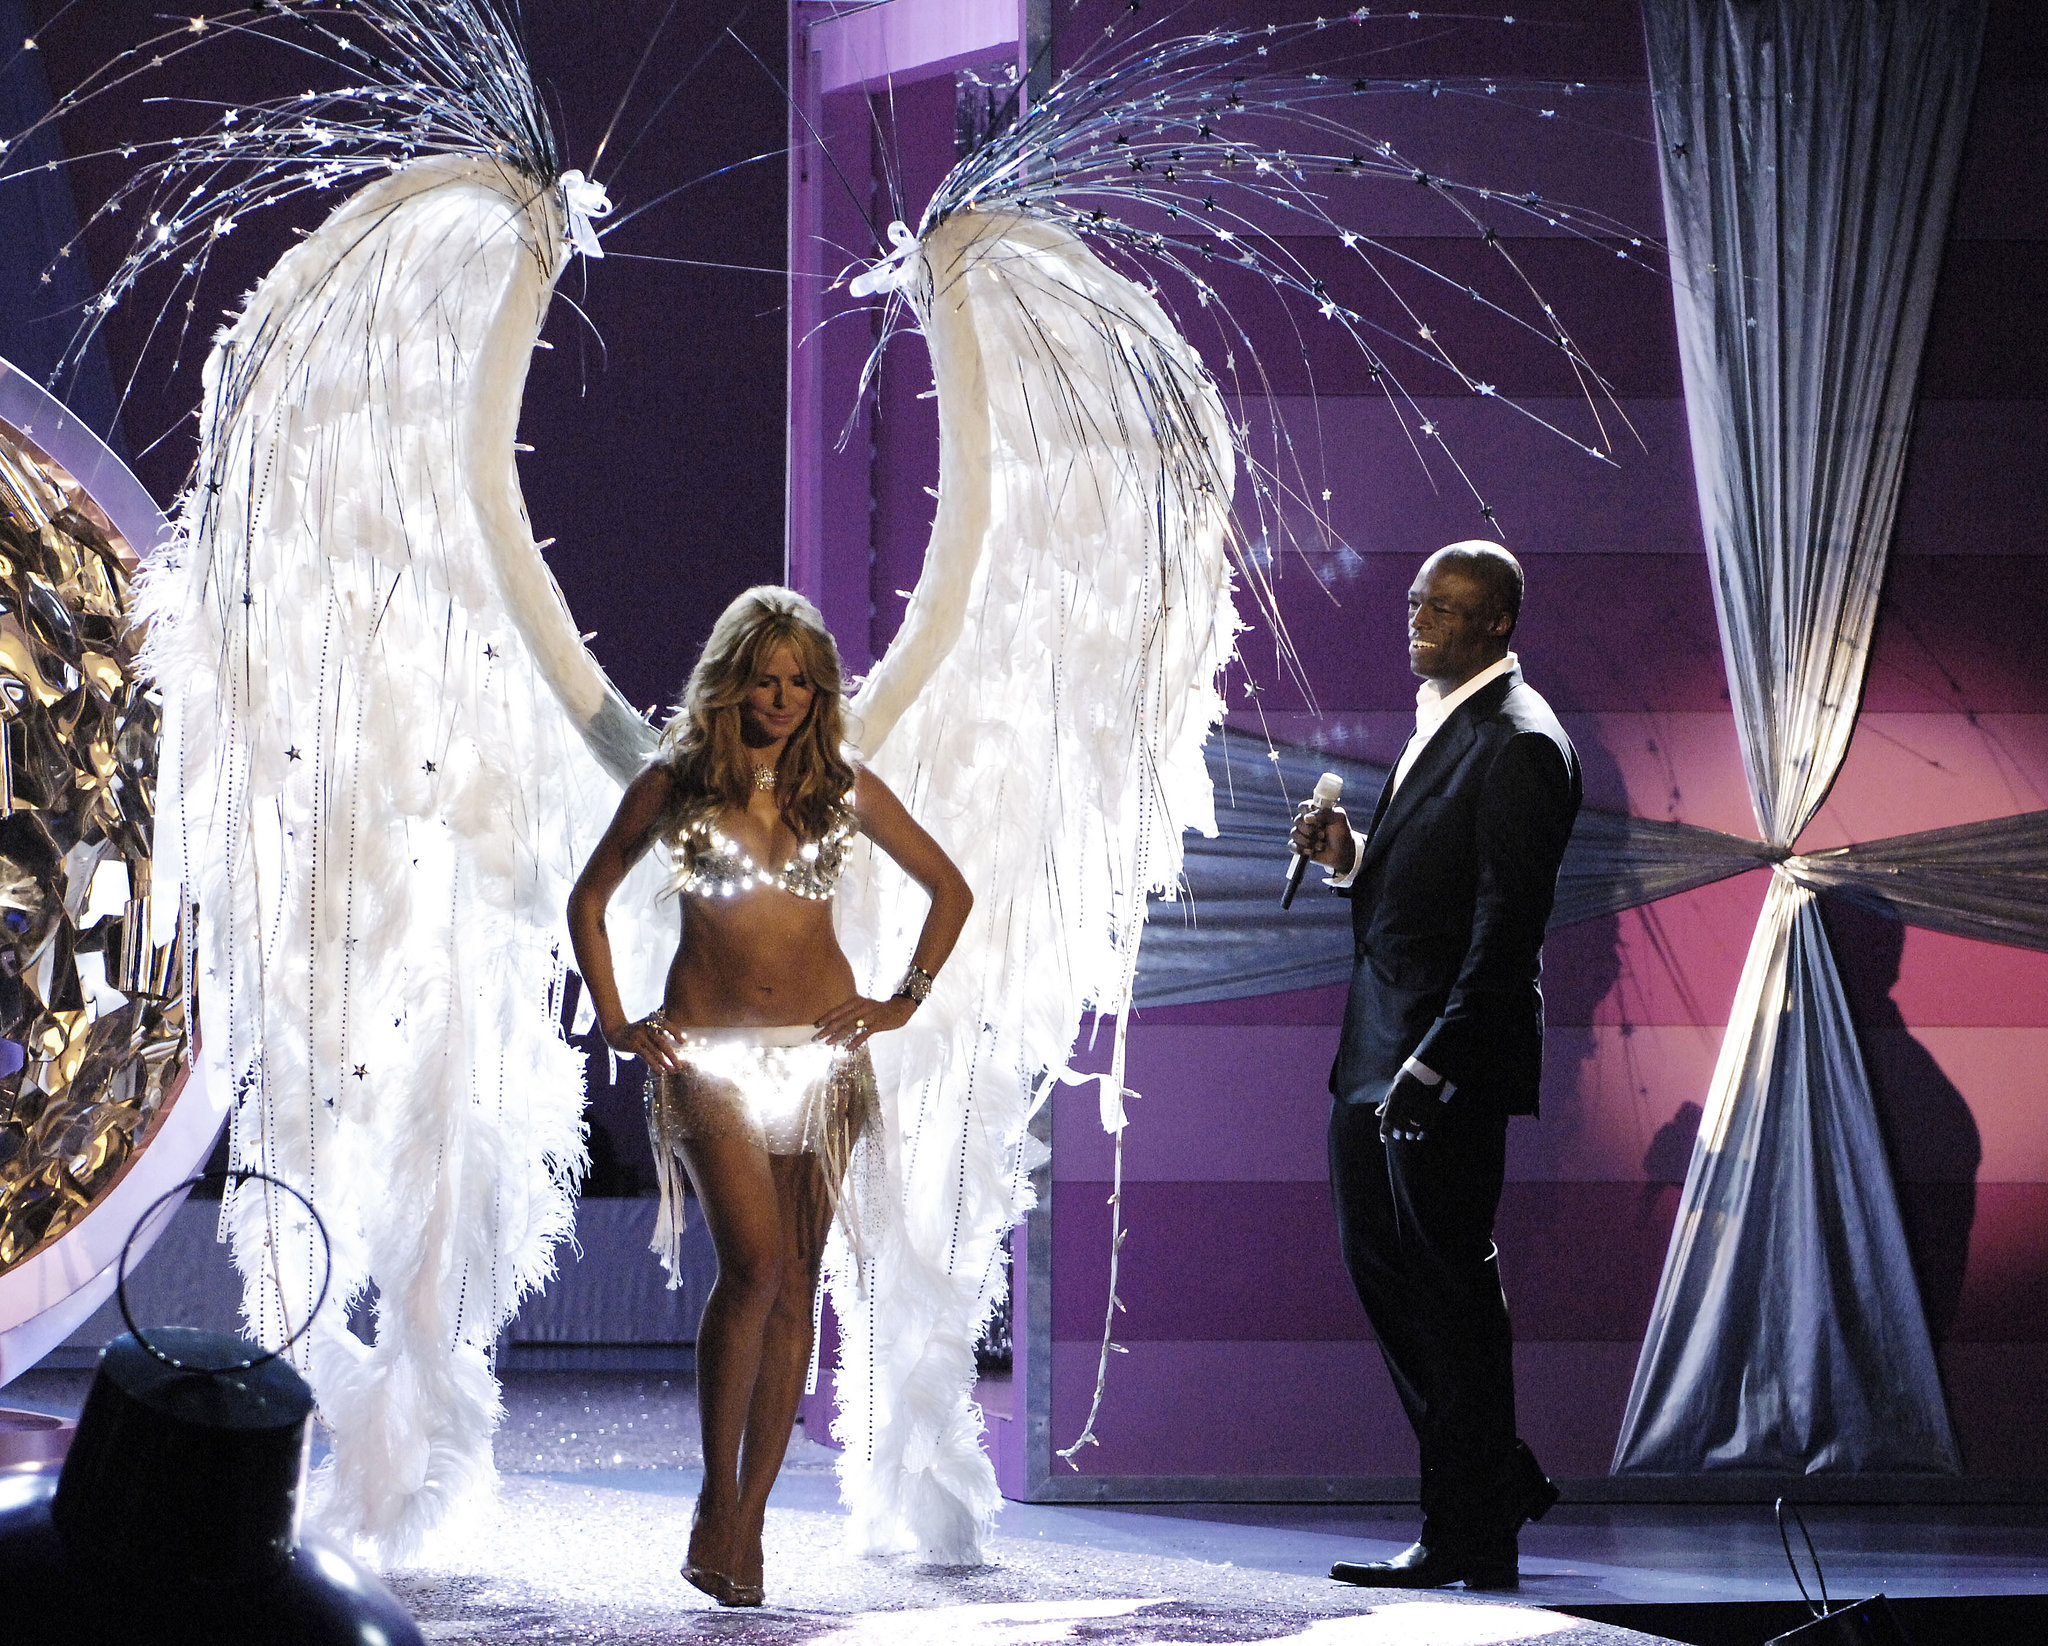 Heidi Klum flashed a smile at husband Seal while wearing glowing angel wings in 2005.